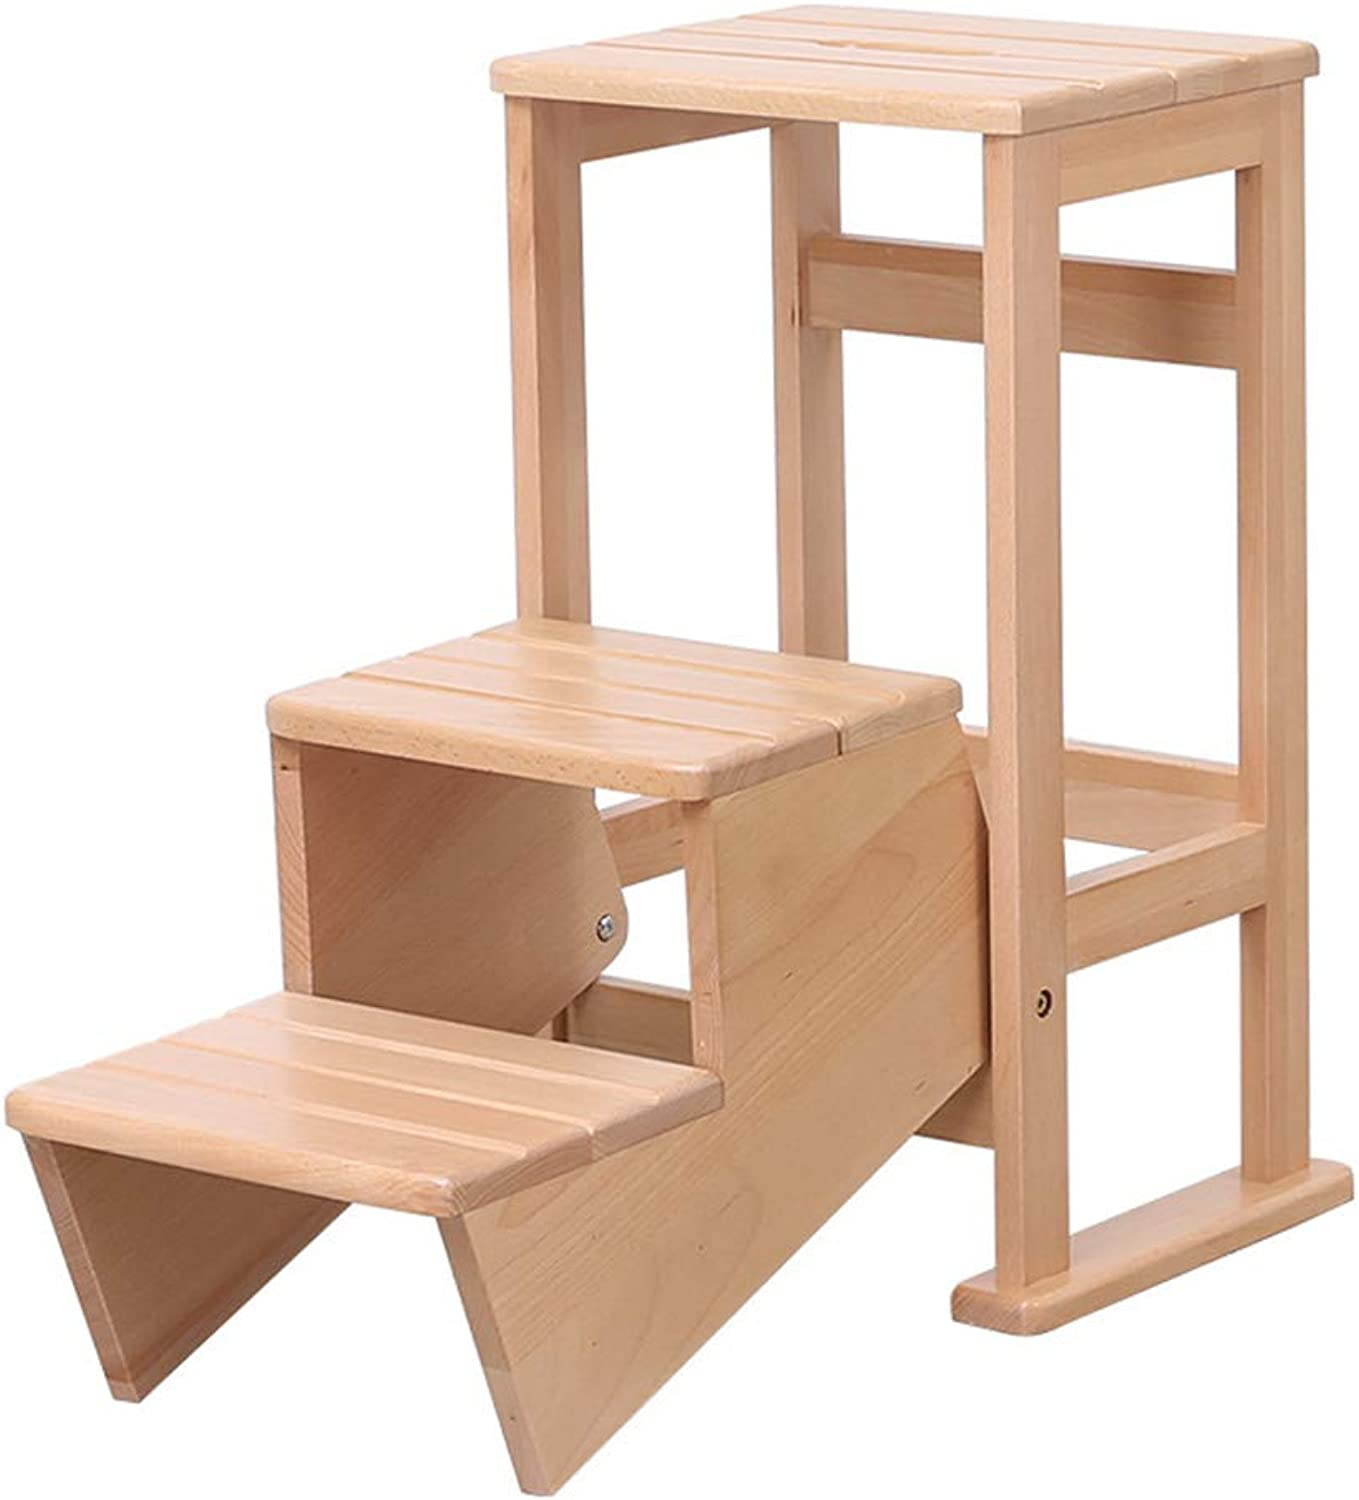 Wooden Stepstool Ladder, Step Ladders Folding Stool, Lightweight Step Stool with Wide Pedal, Sturdy Wood Beech Step Stairway Chair